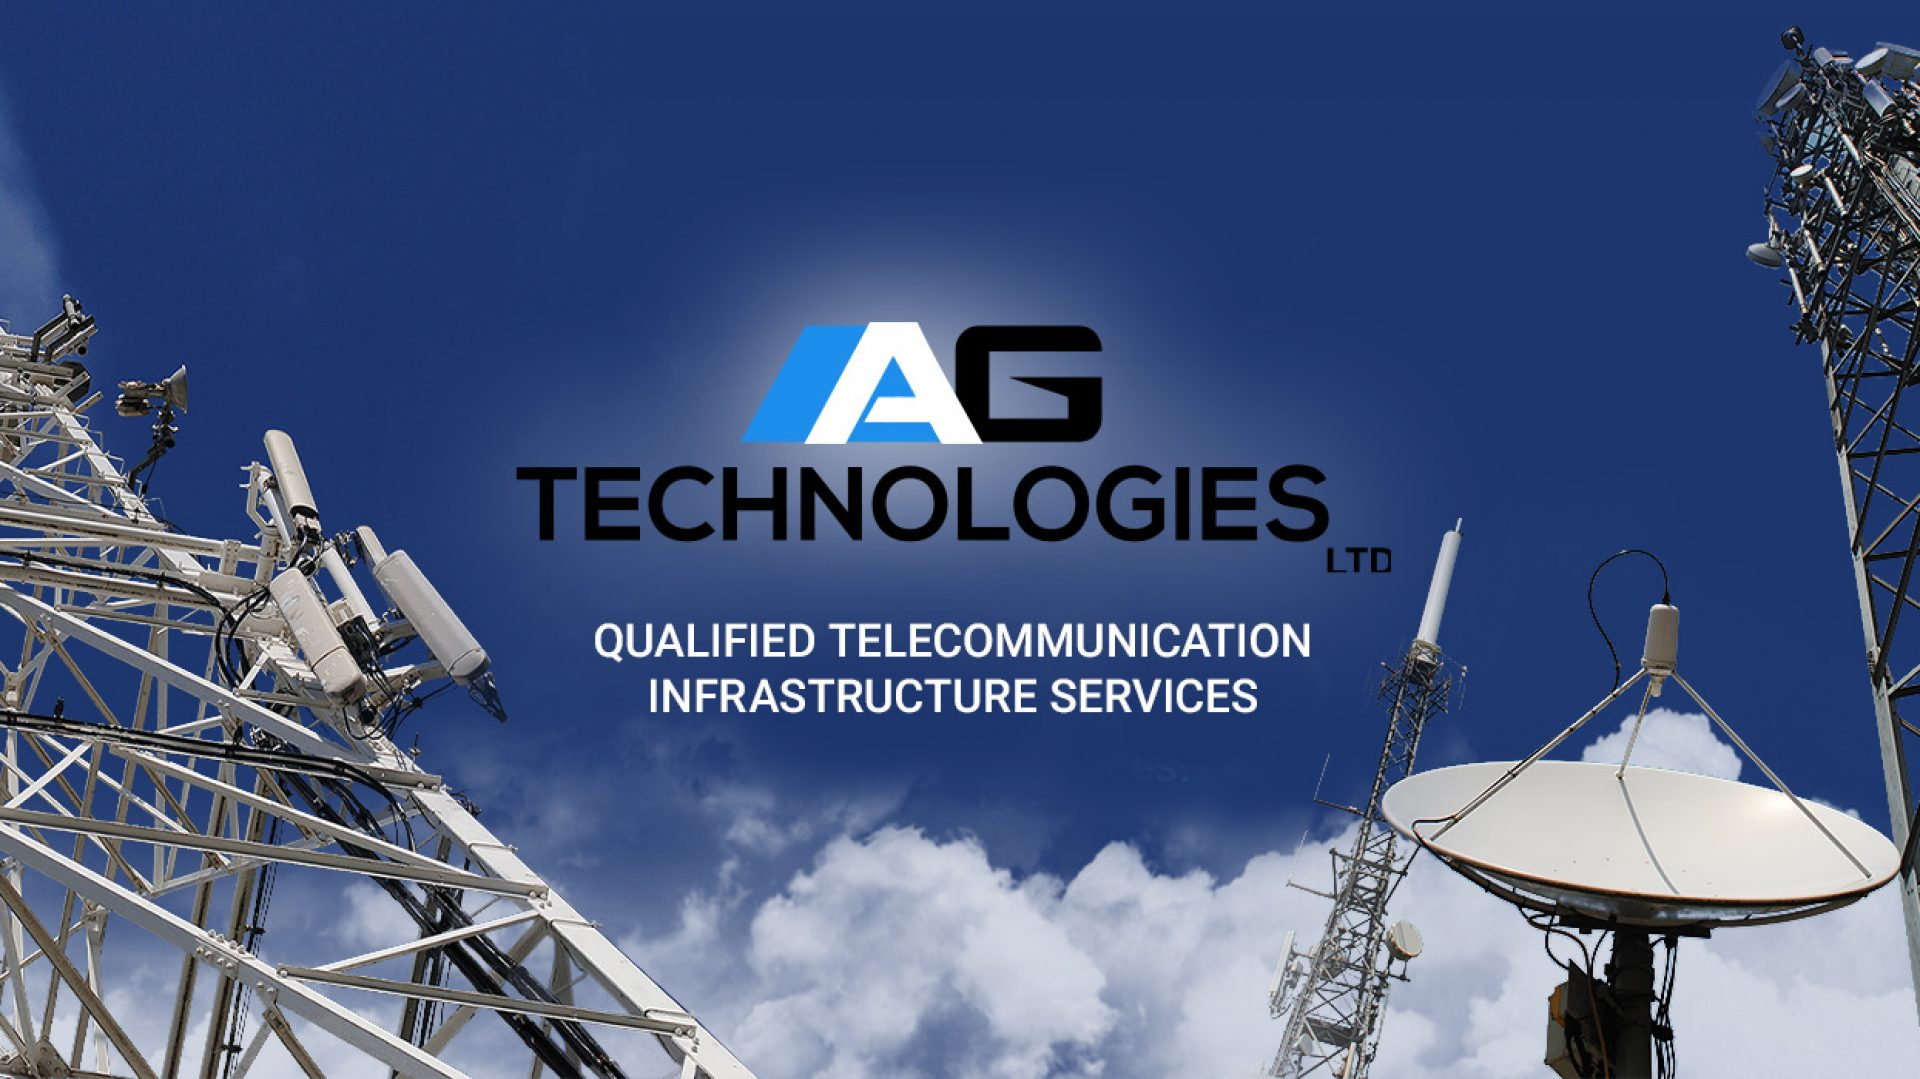 AG Technologies LTD